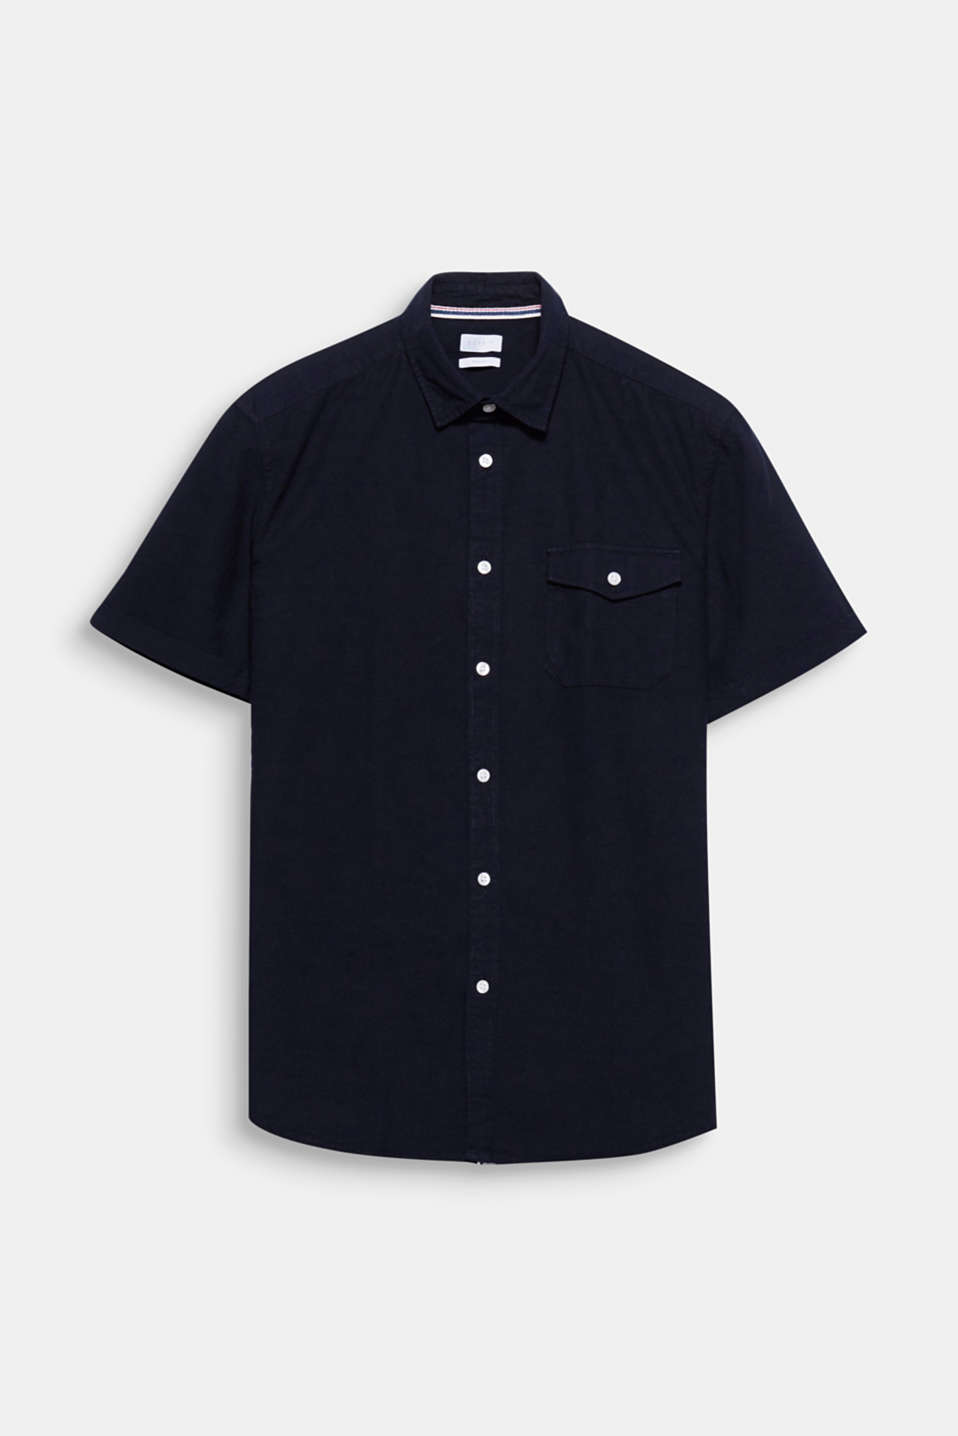 The different on-trend colours and relaxed cut give this short sleeve shirt its stylish, summery look.